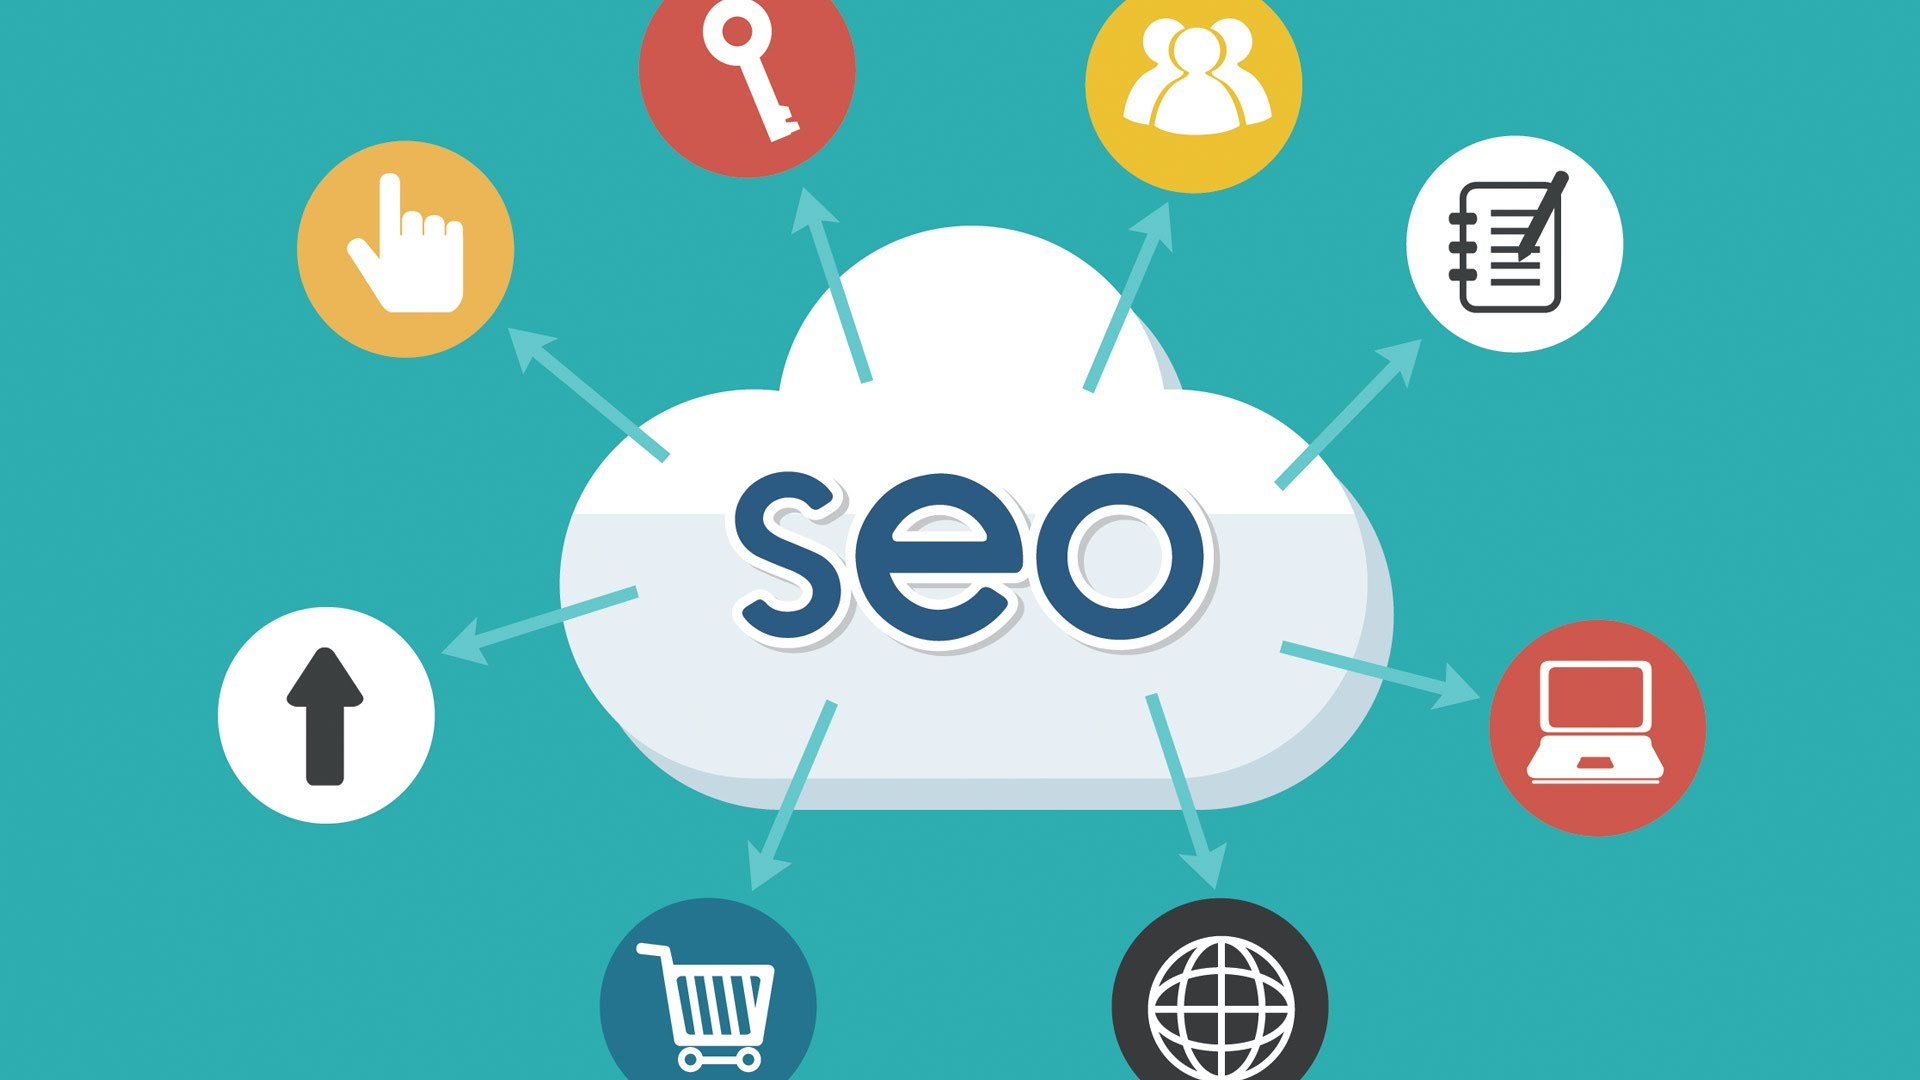 What is the best search engine for 2020?